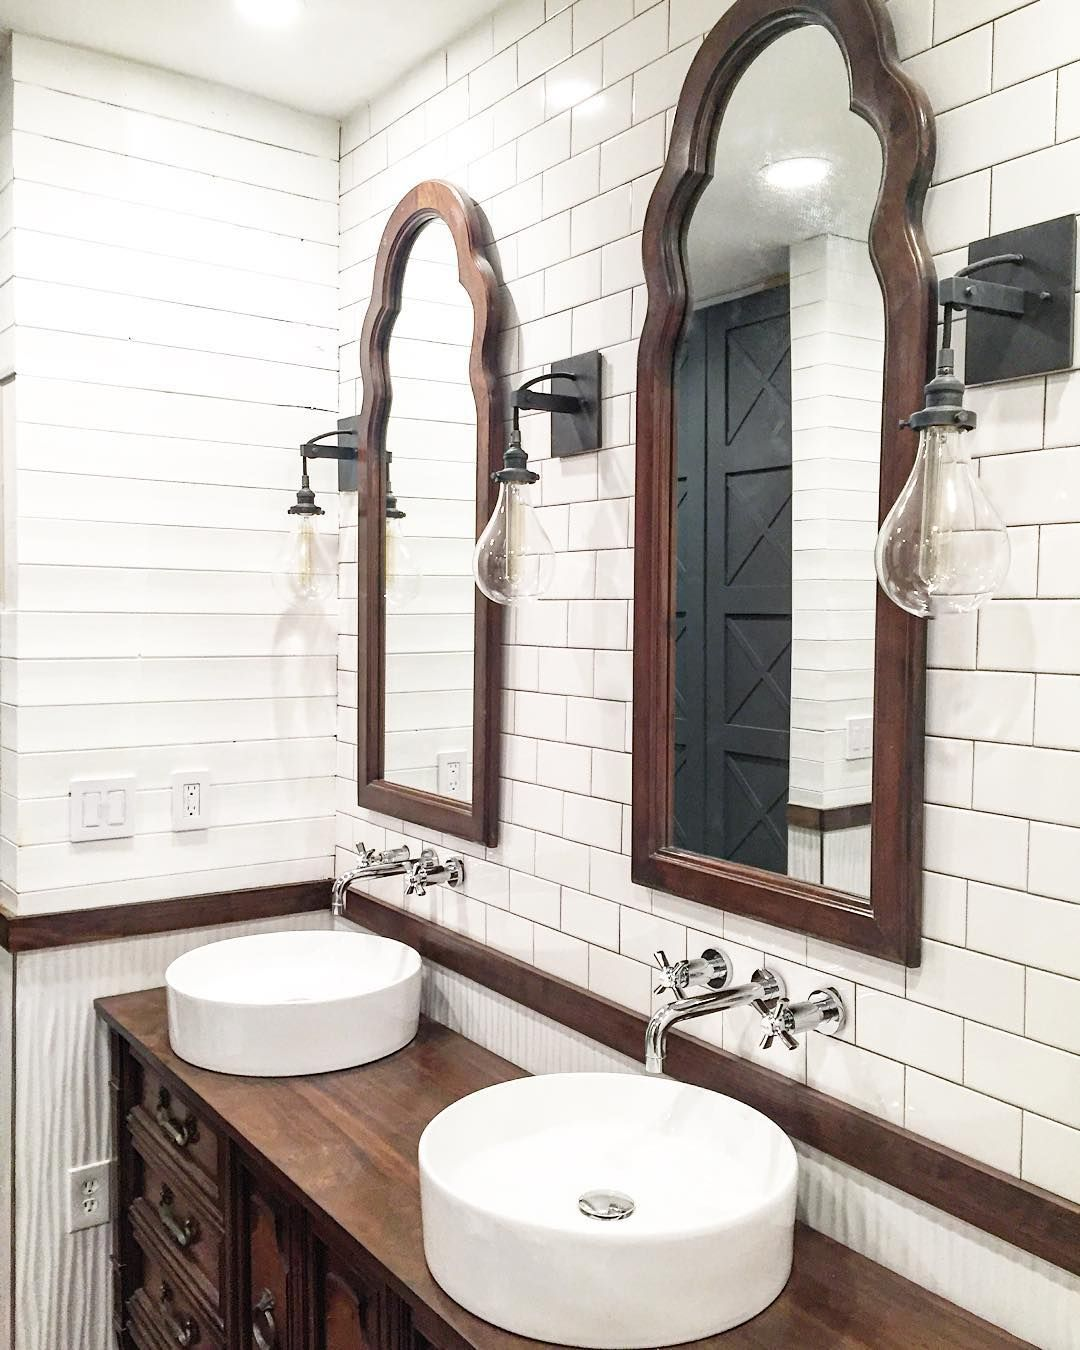 Plank walls in bathroom - Rustic Farmhouse Bathroom Design With Plank Walls And Subway Tile This Instagram Photo By